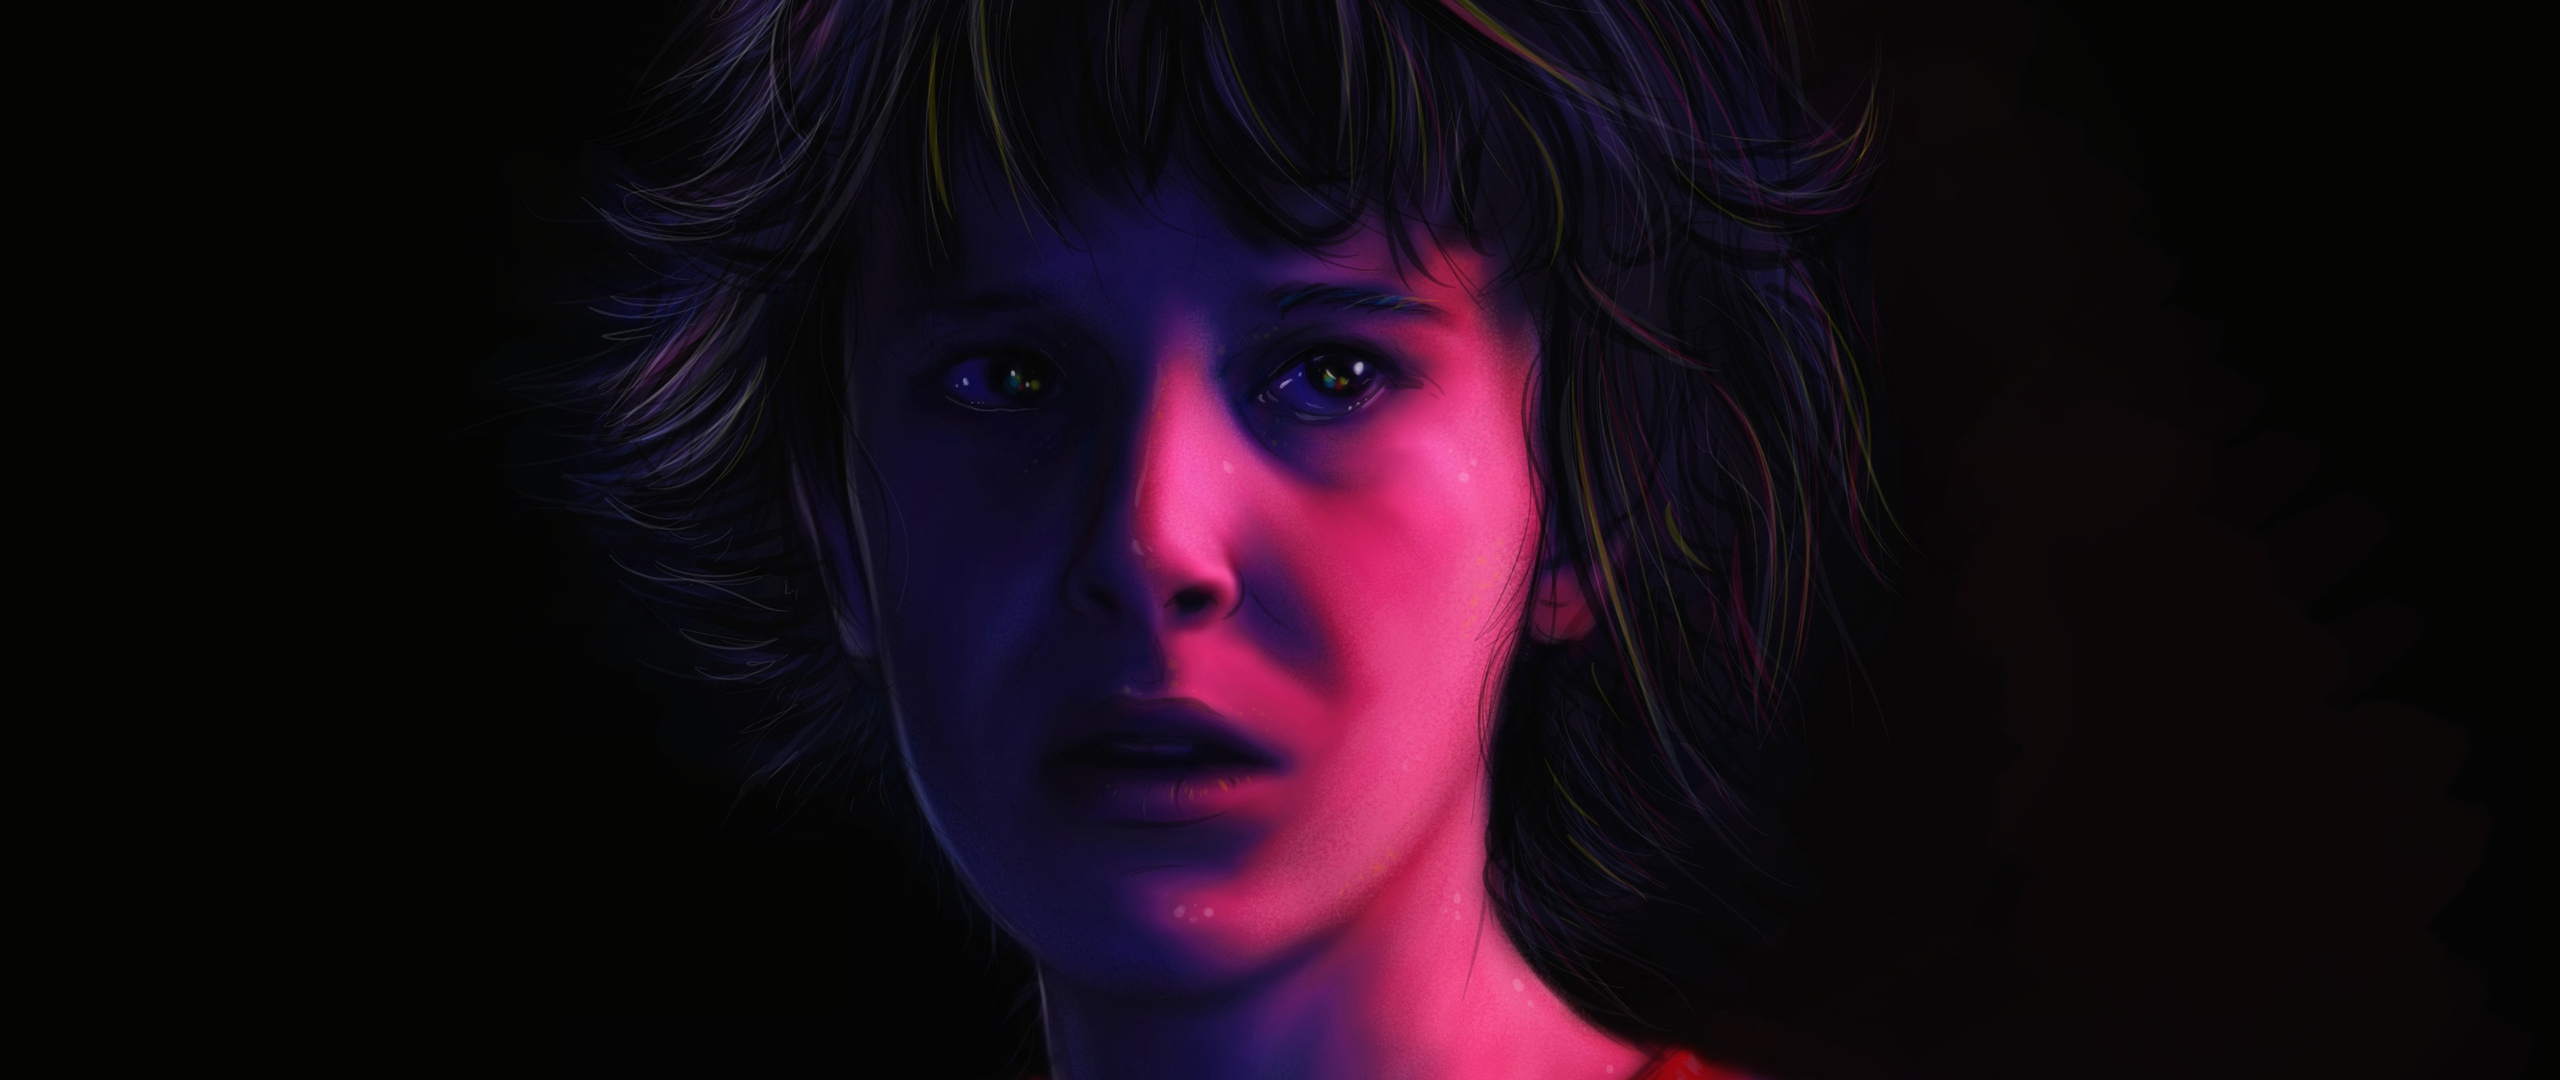 stranger-things-eleven-4k-artwork-new-oo.jpg